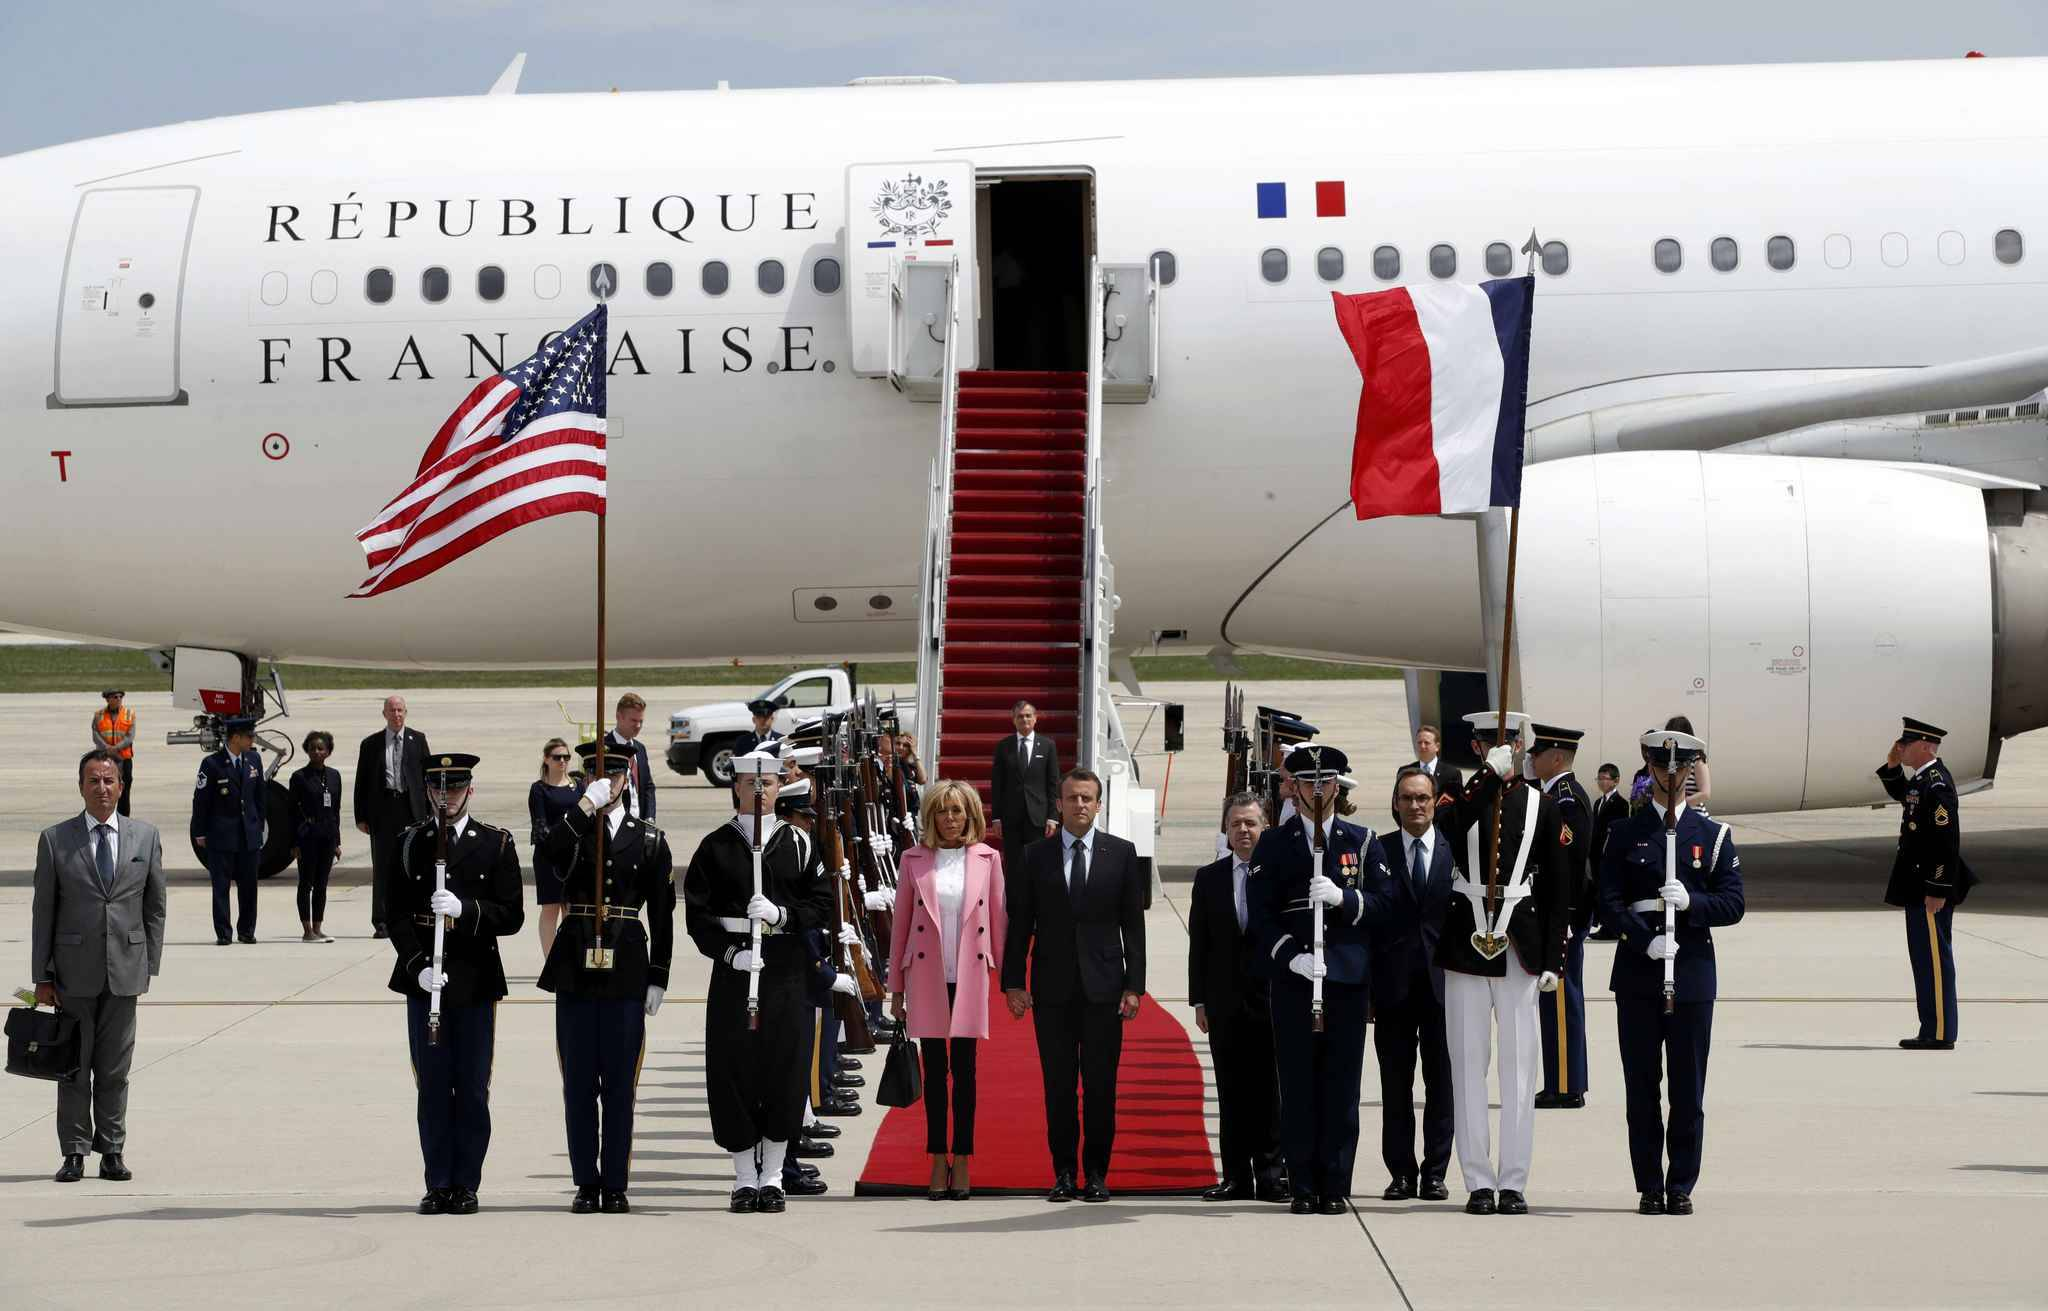 French President Emmanuel Macron and his wife Brigitte Macron arrive at Andrews Air Force Base, Md., Monday April 23, 2018. President Donald Trump, celebrating nearly 250 years of U.S.-French relations, will be hosting Macron at a glitzy White House state visit.